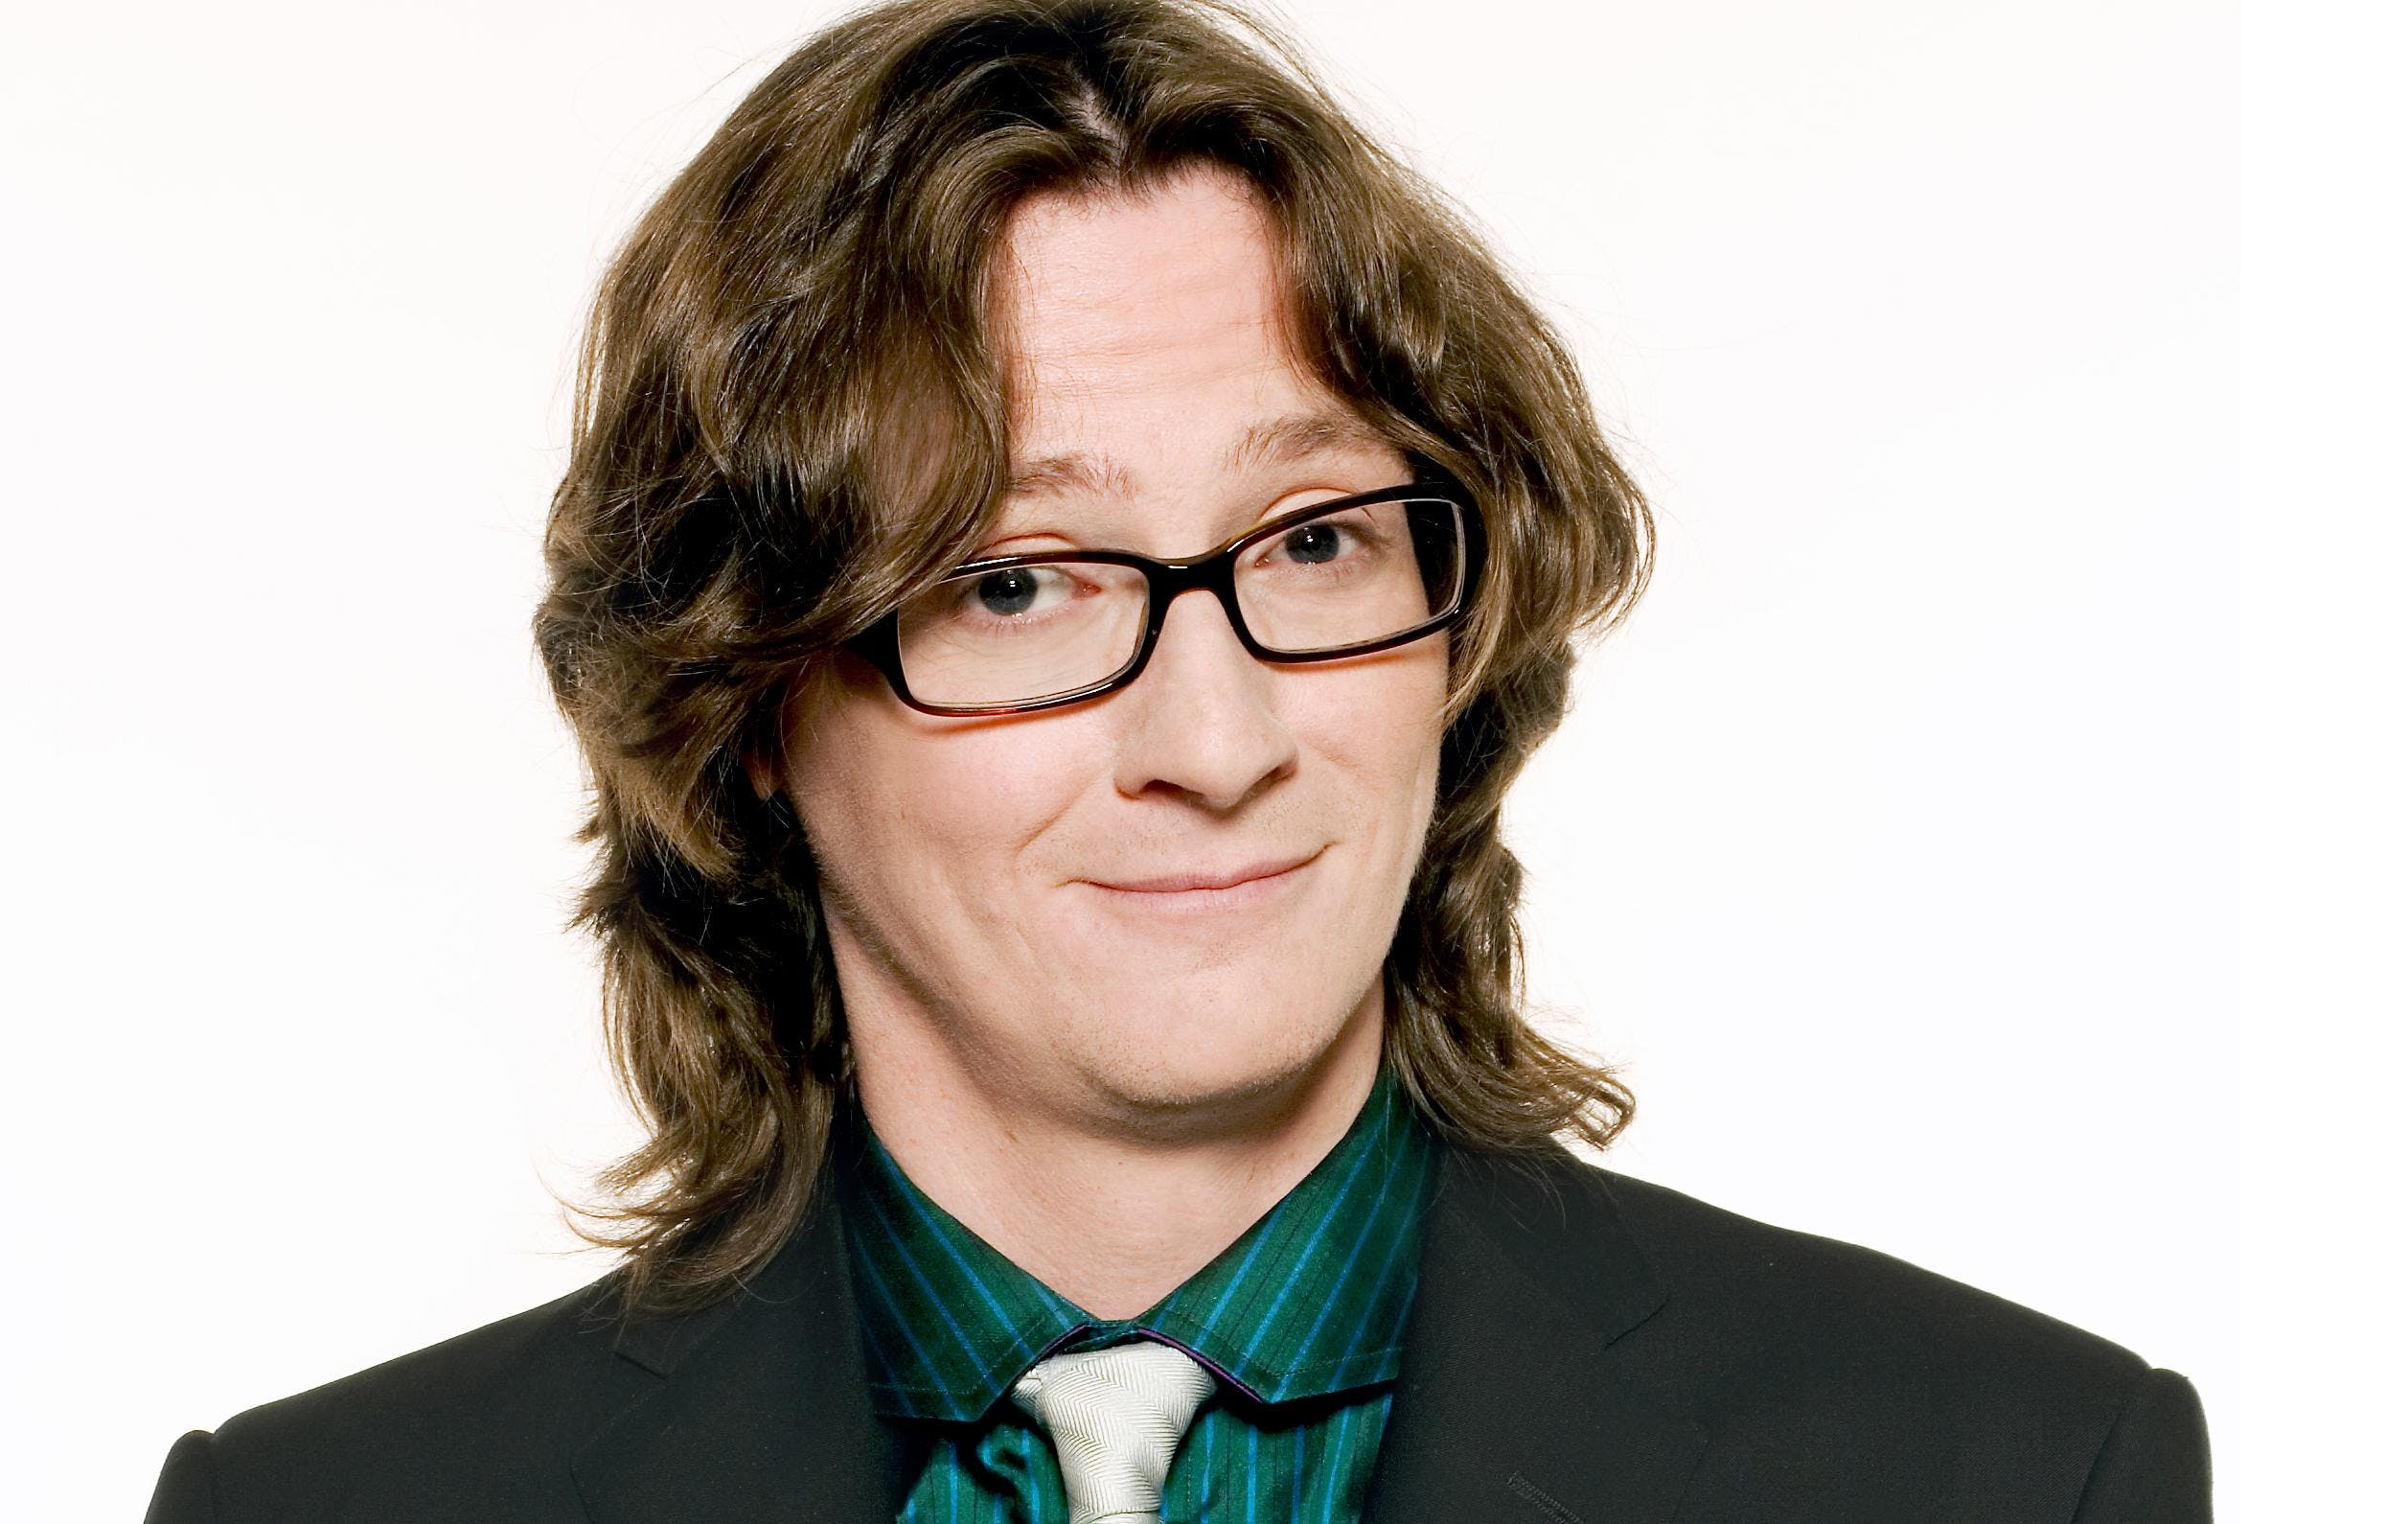 IEF Comedy Night London, featuring Ed Byrne